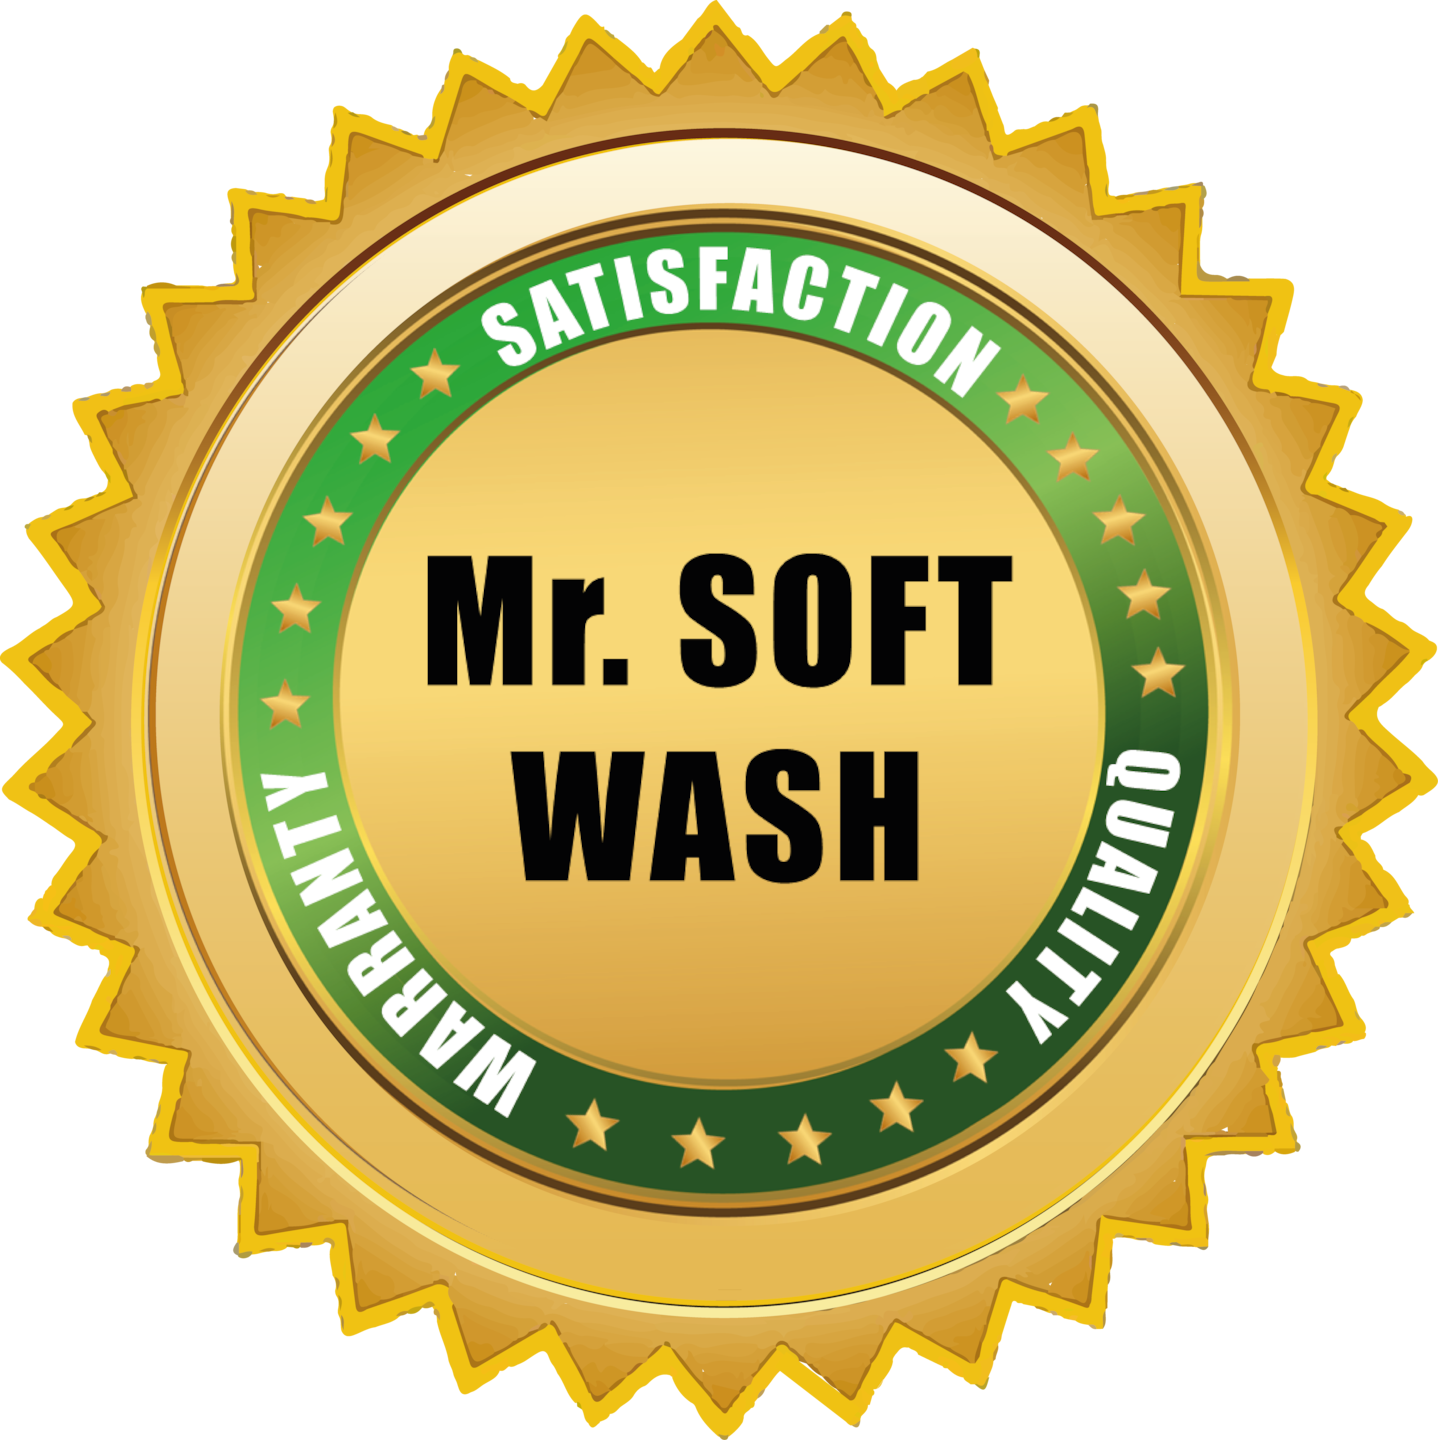 Mr. Soft Wash, LLC